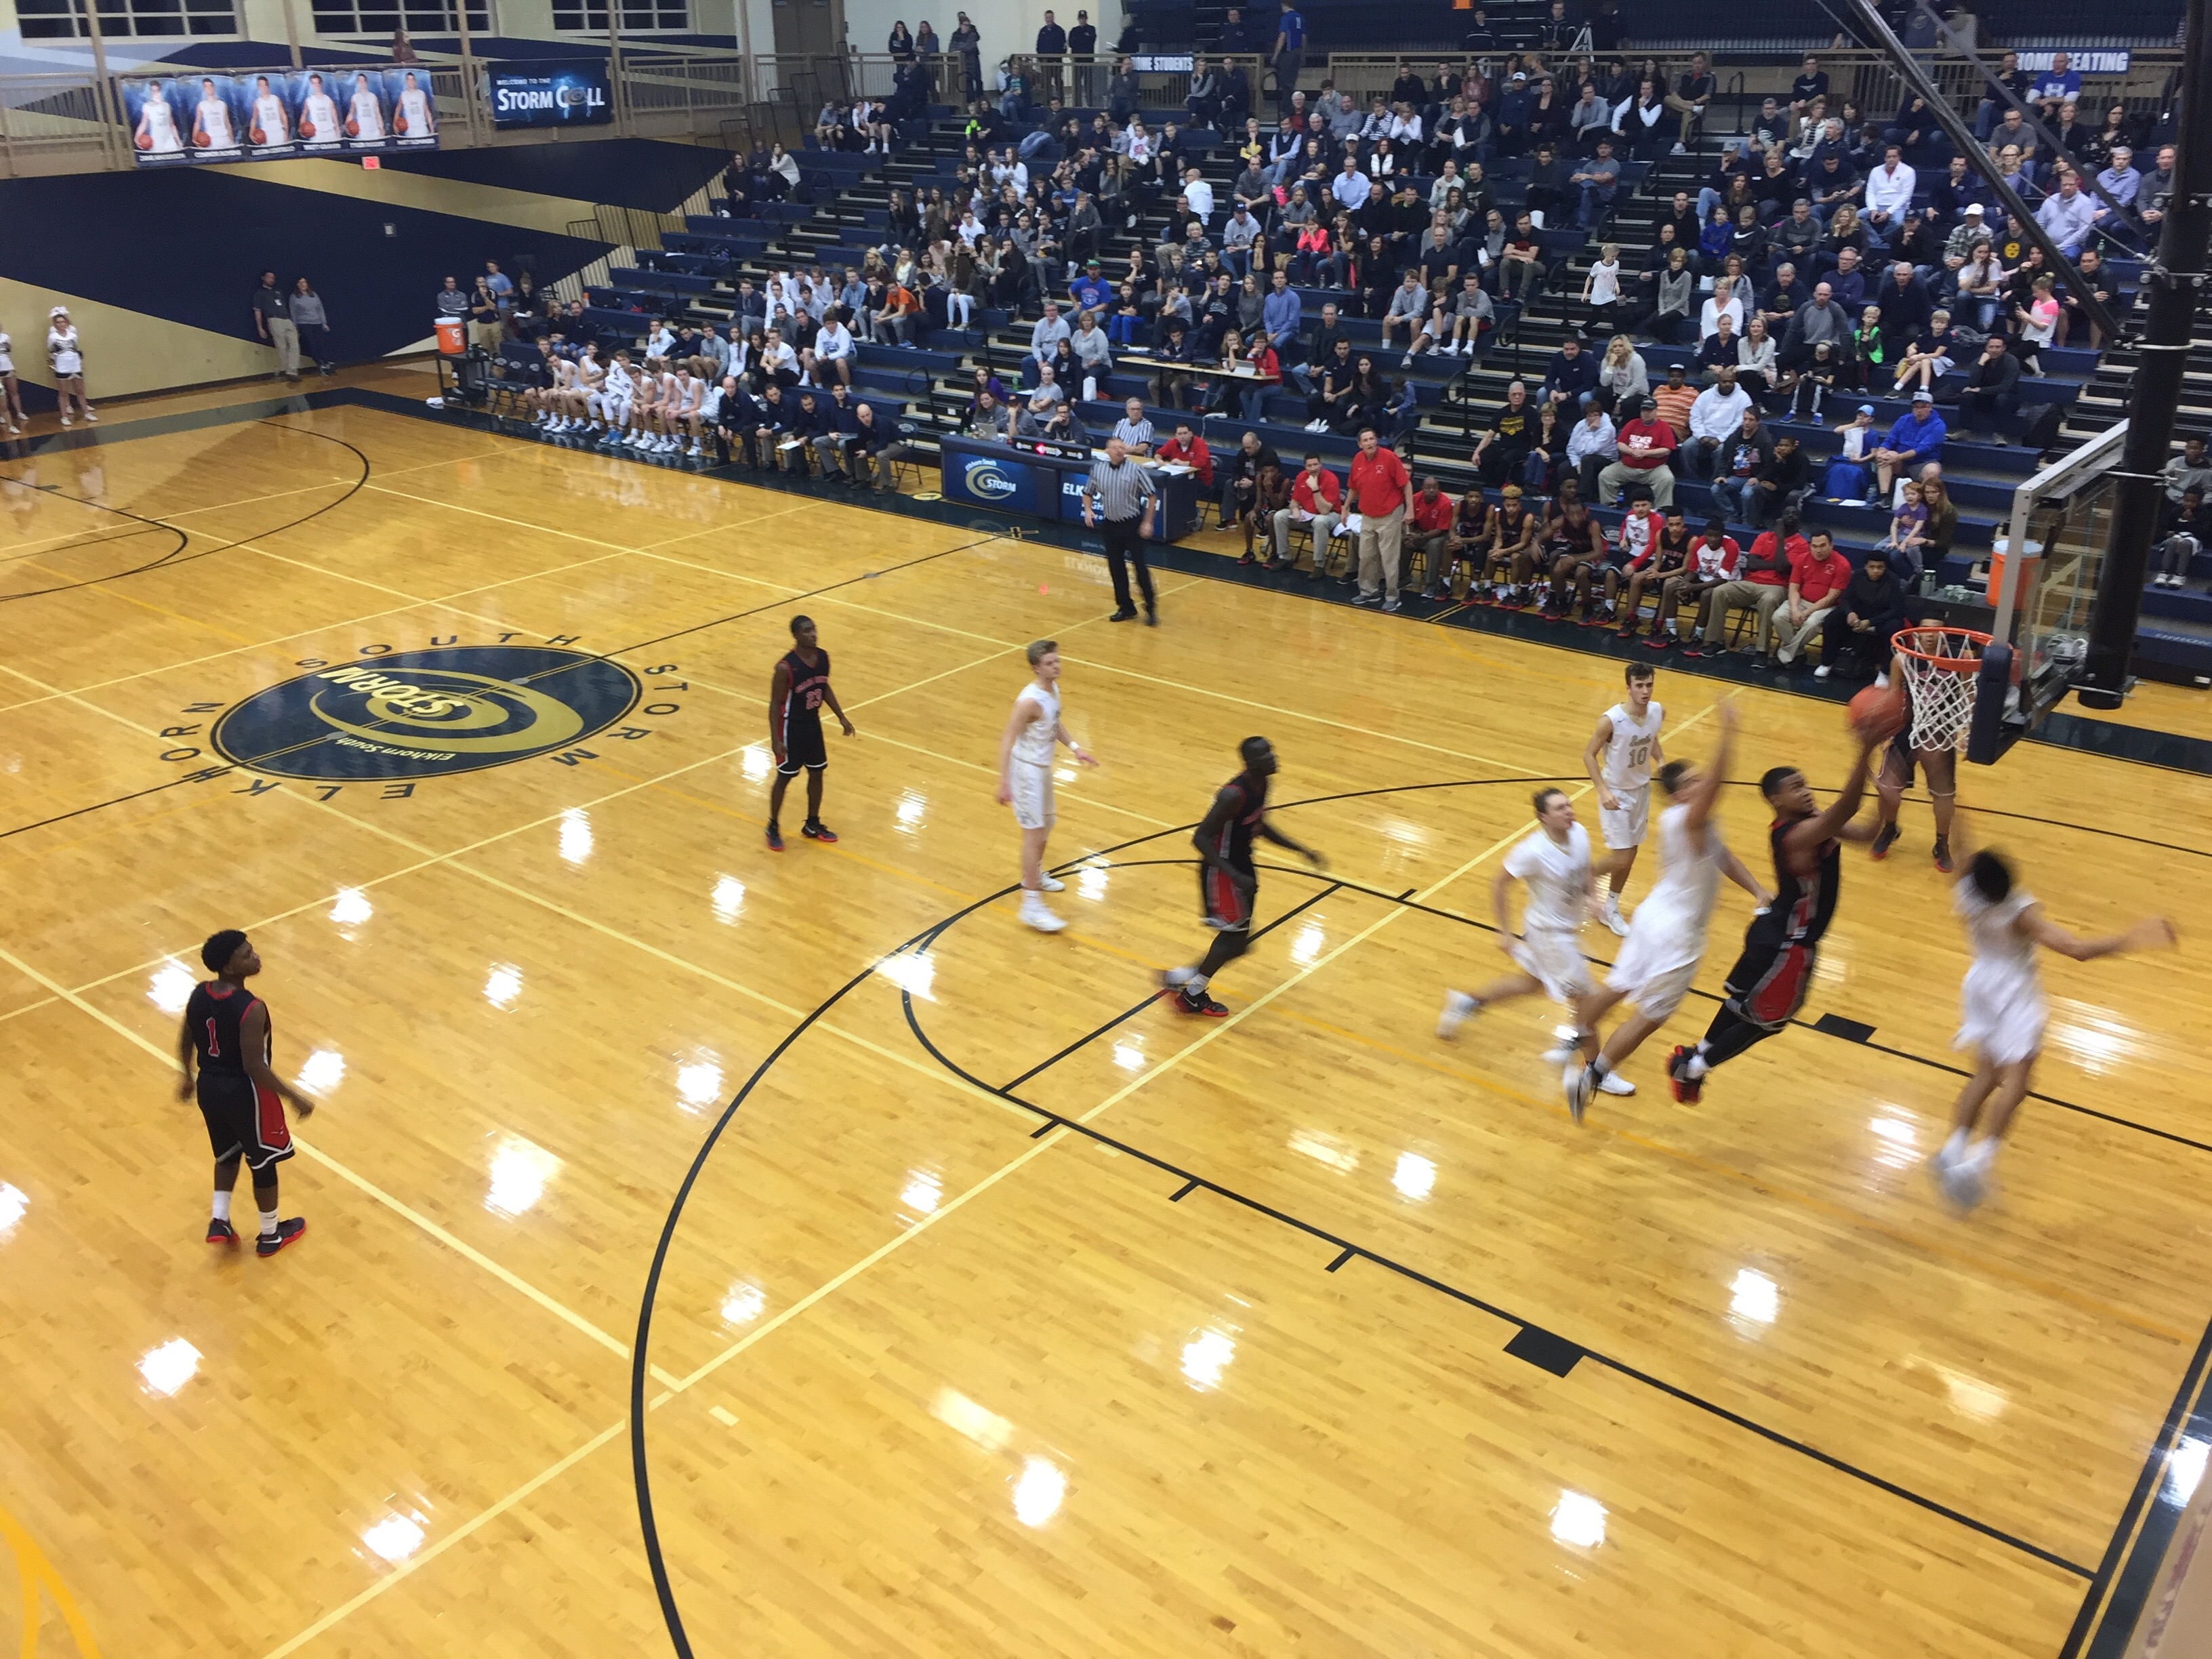 Omaha South High School Boys Varsity Basketball beat Elkhorn South High School 58-46